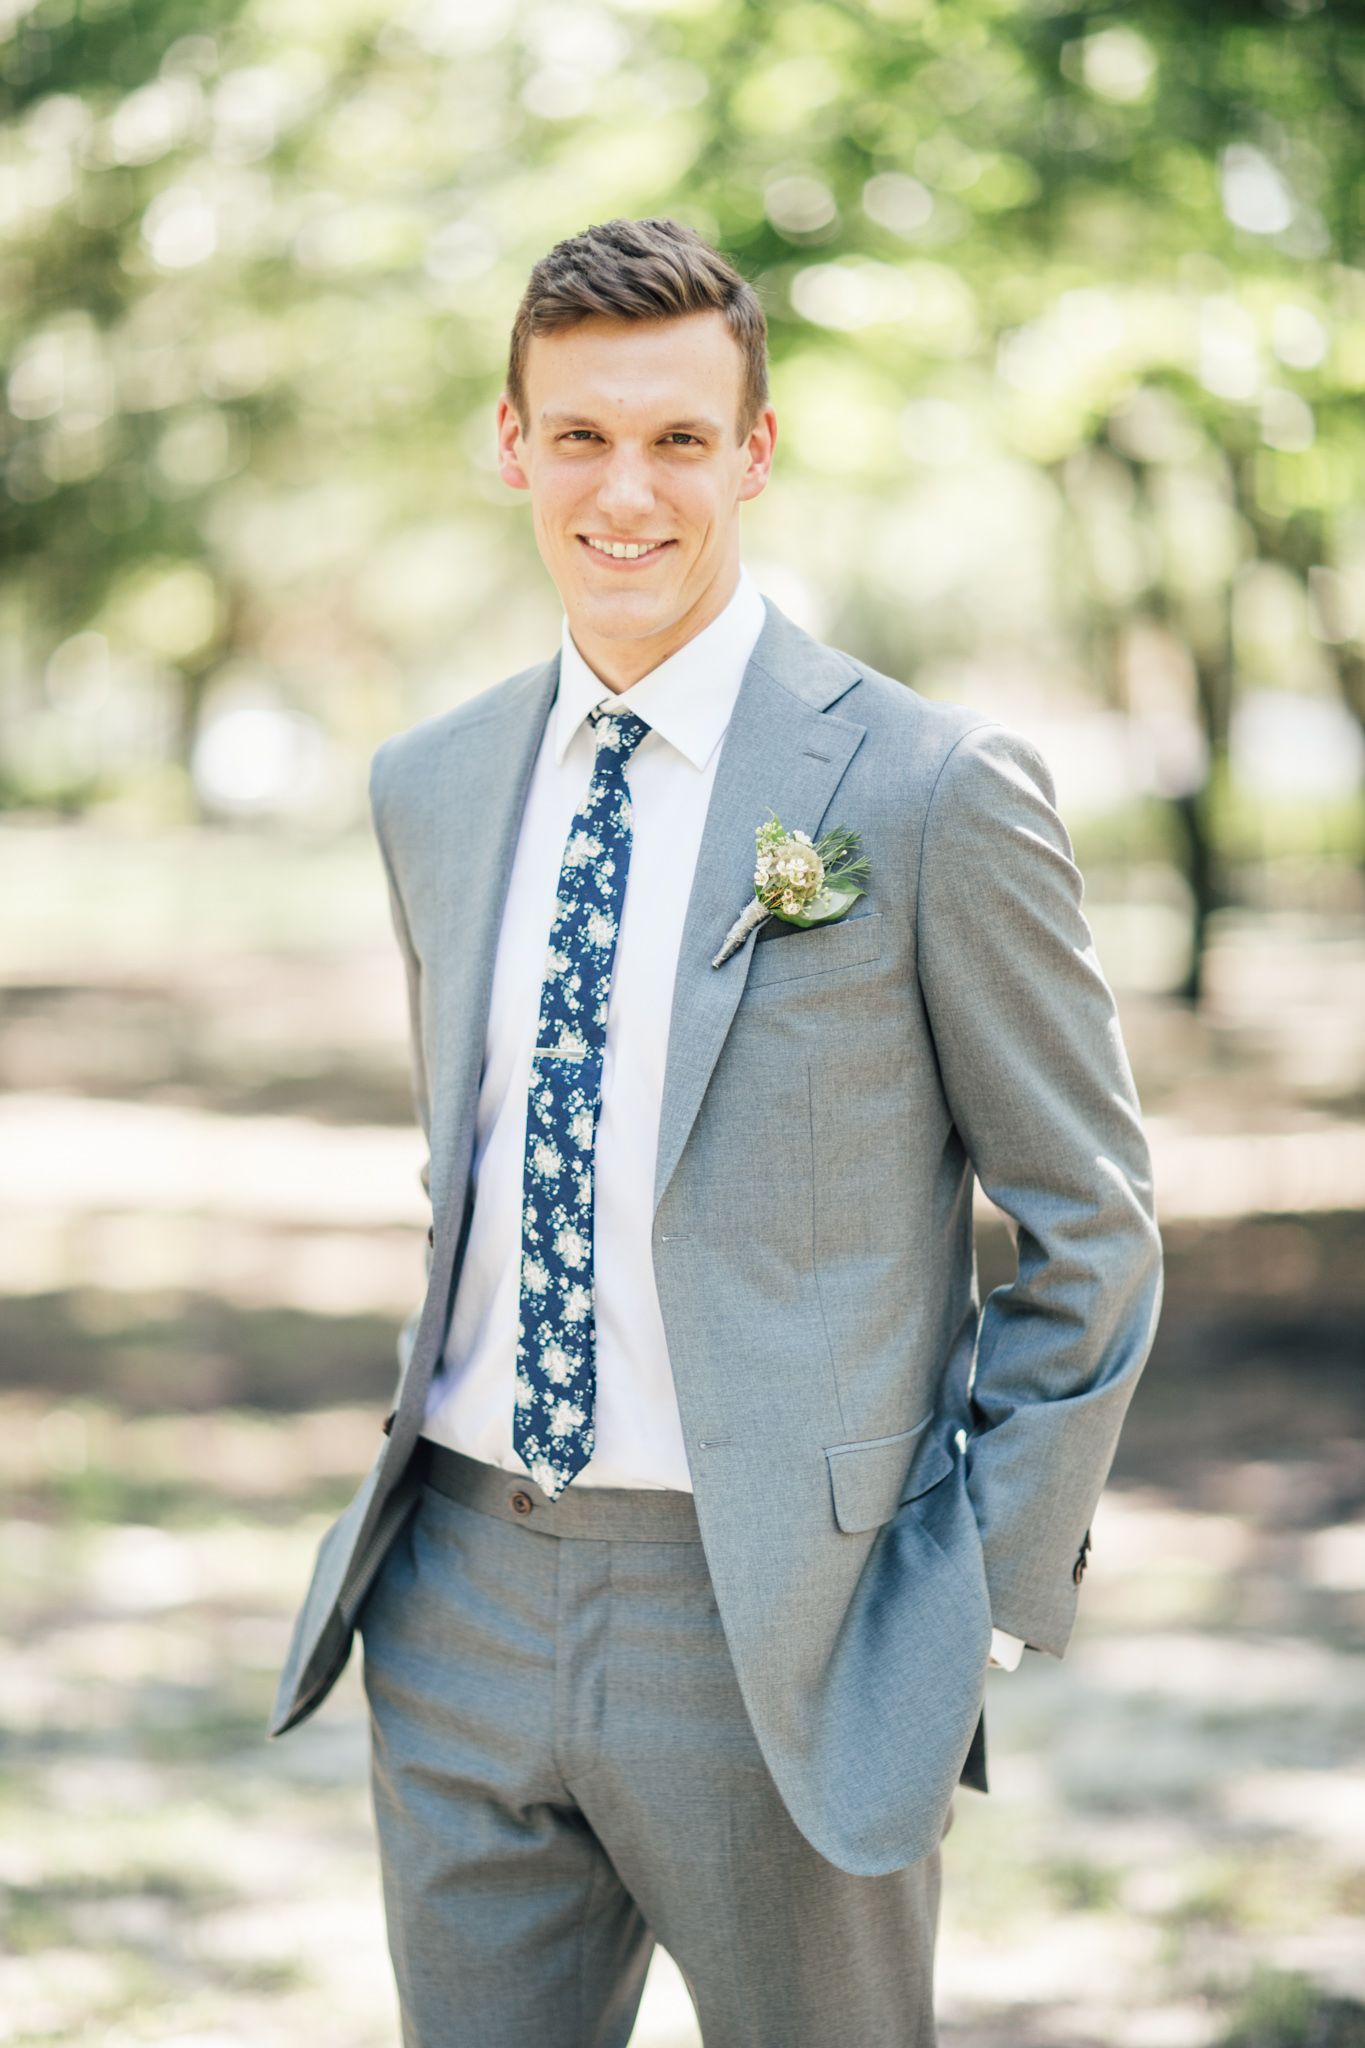 Groom wearing tailored grey suit with floral tie   07.25.15 ...